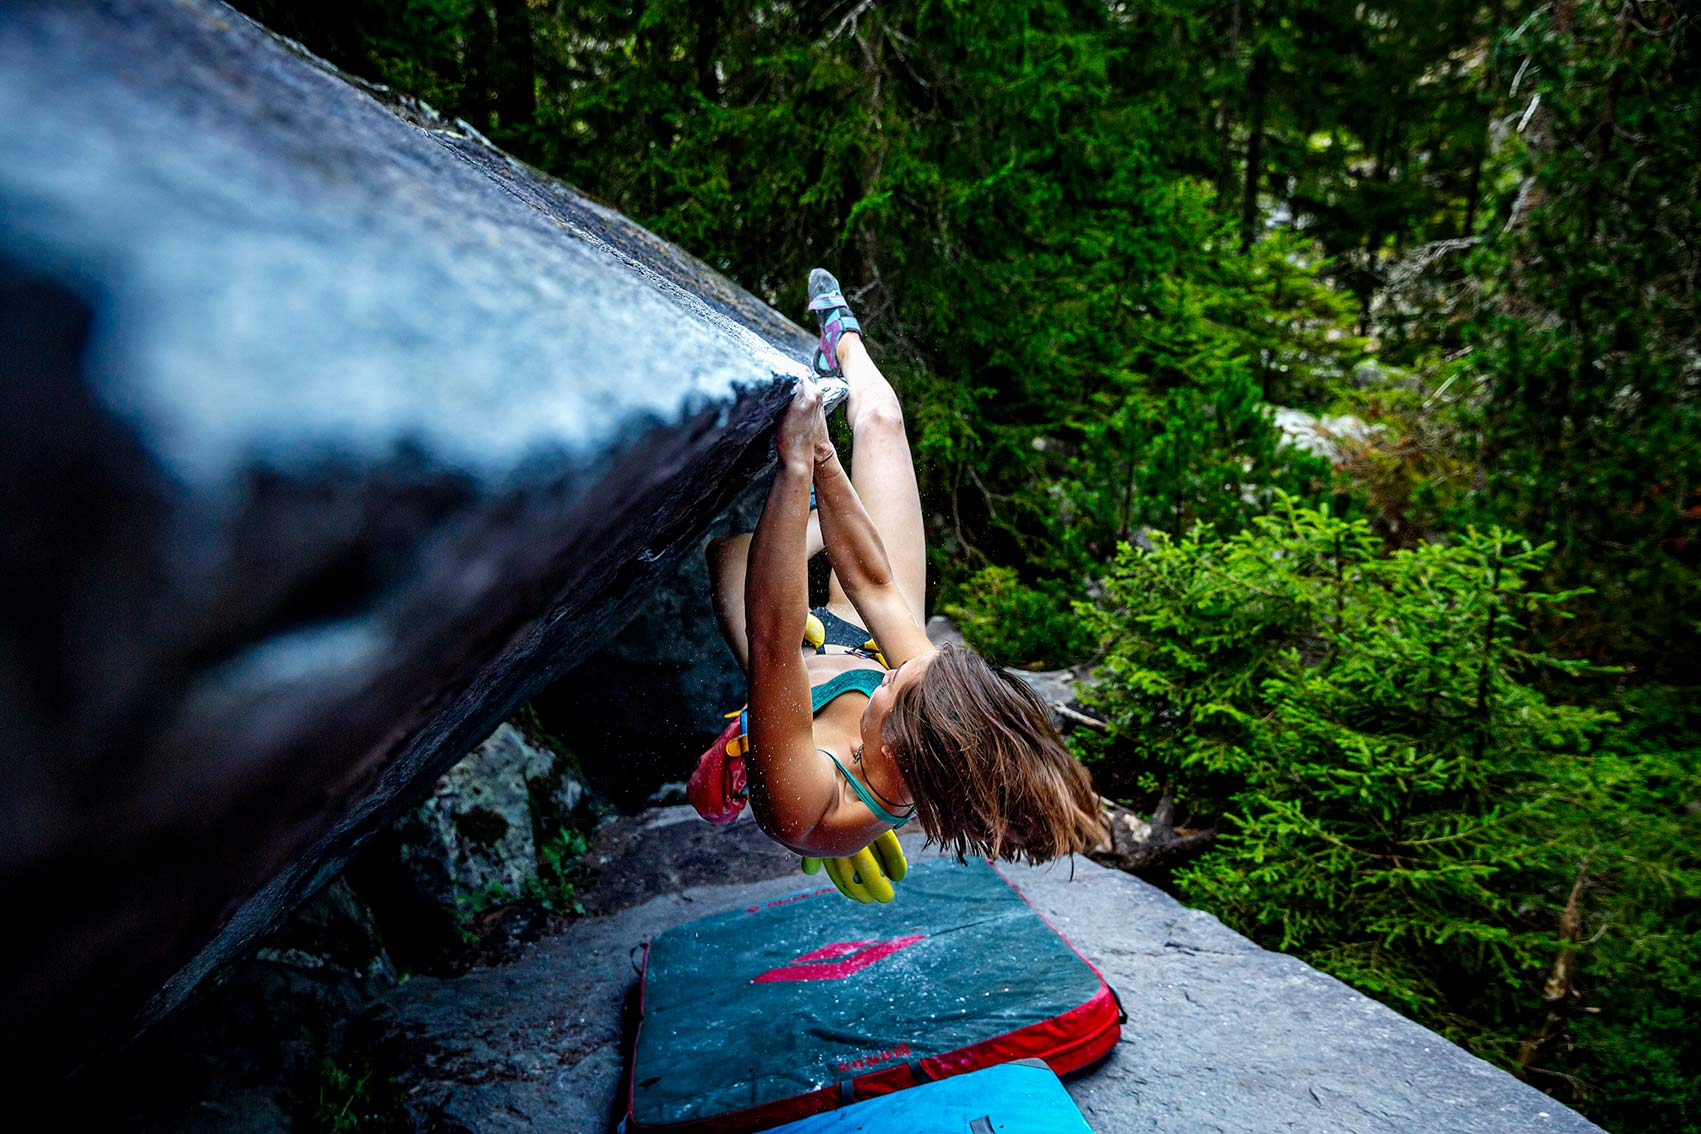 Climber girl hanging from wall